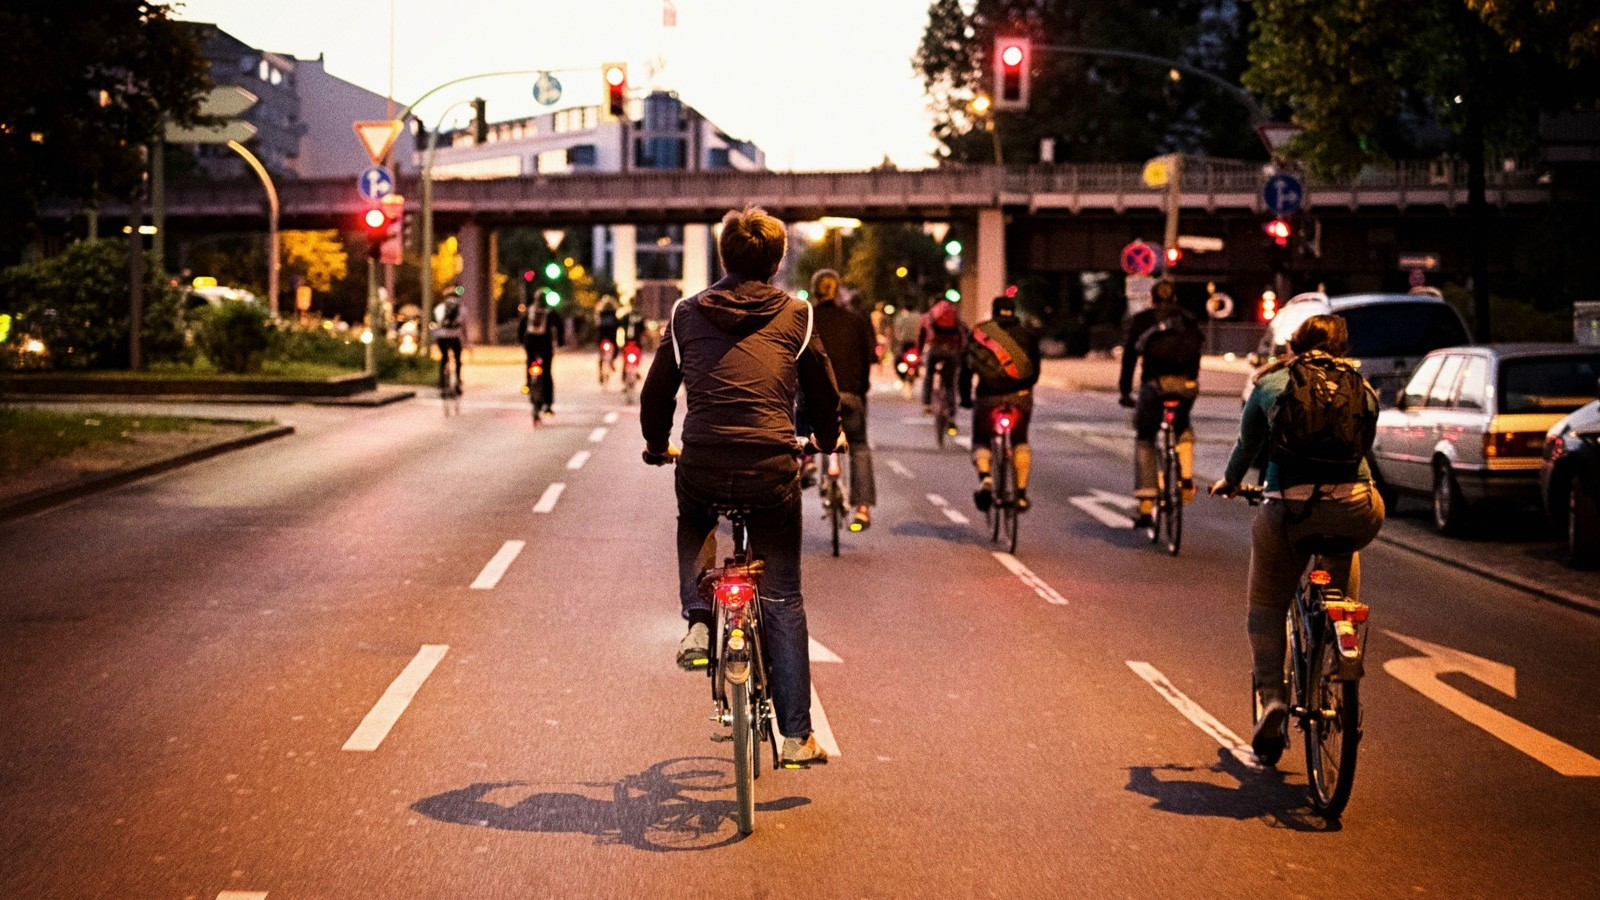 Commuting by bike is an efficient way of making exercise and cycling part of your everyday life